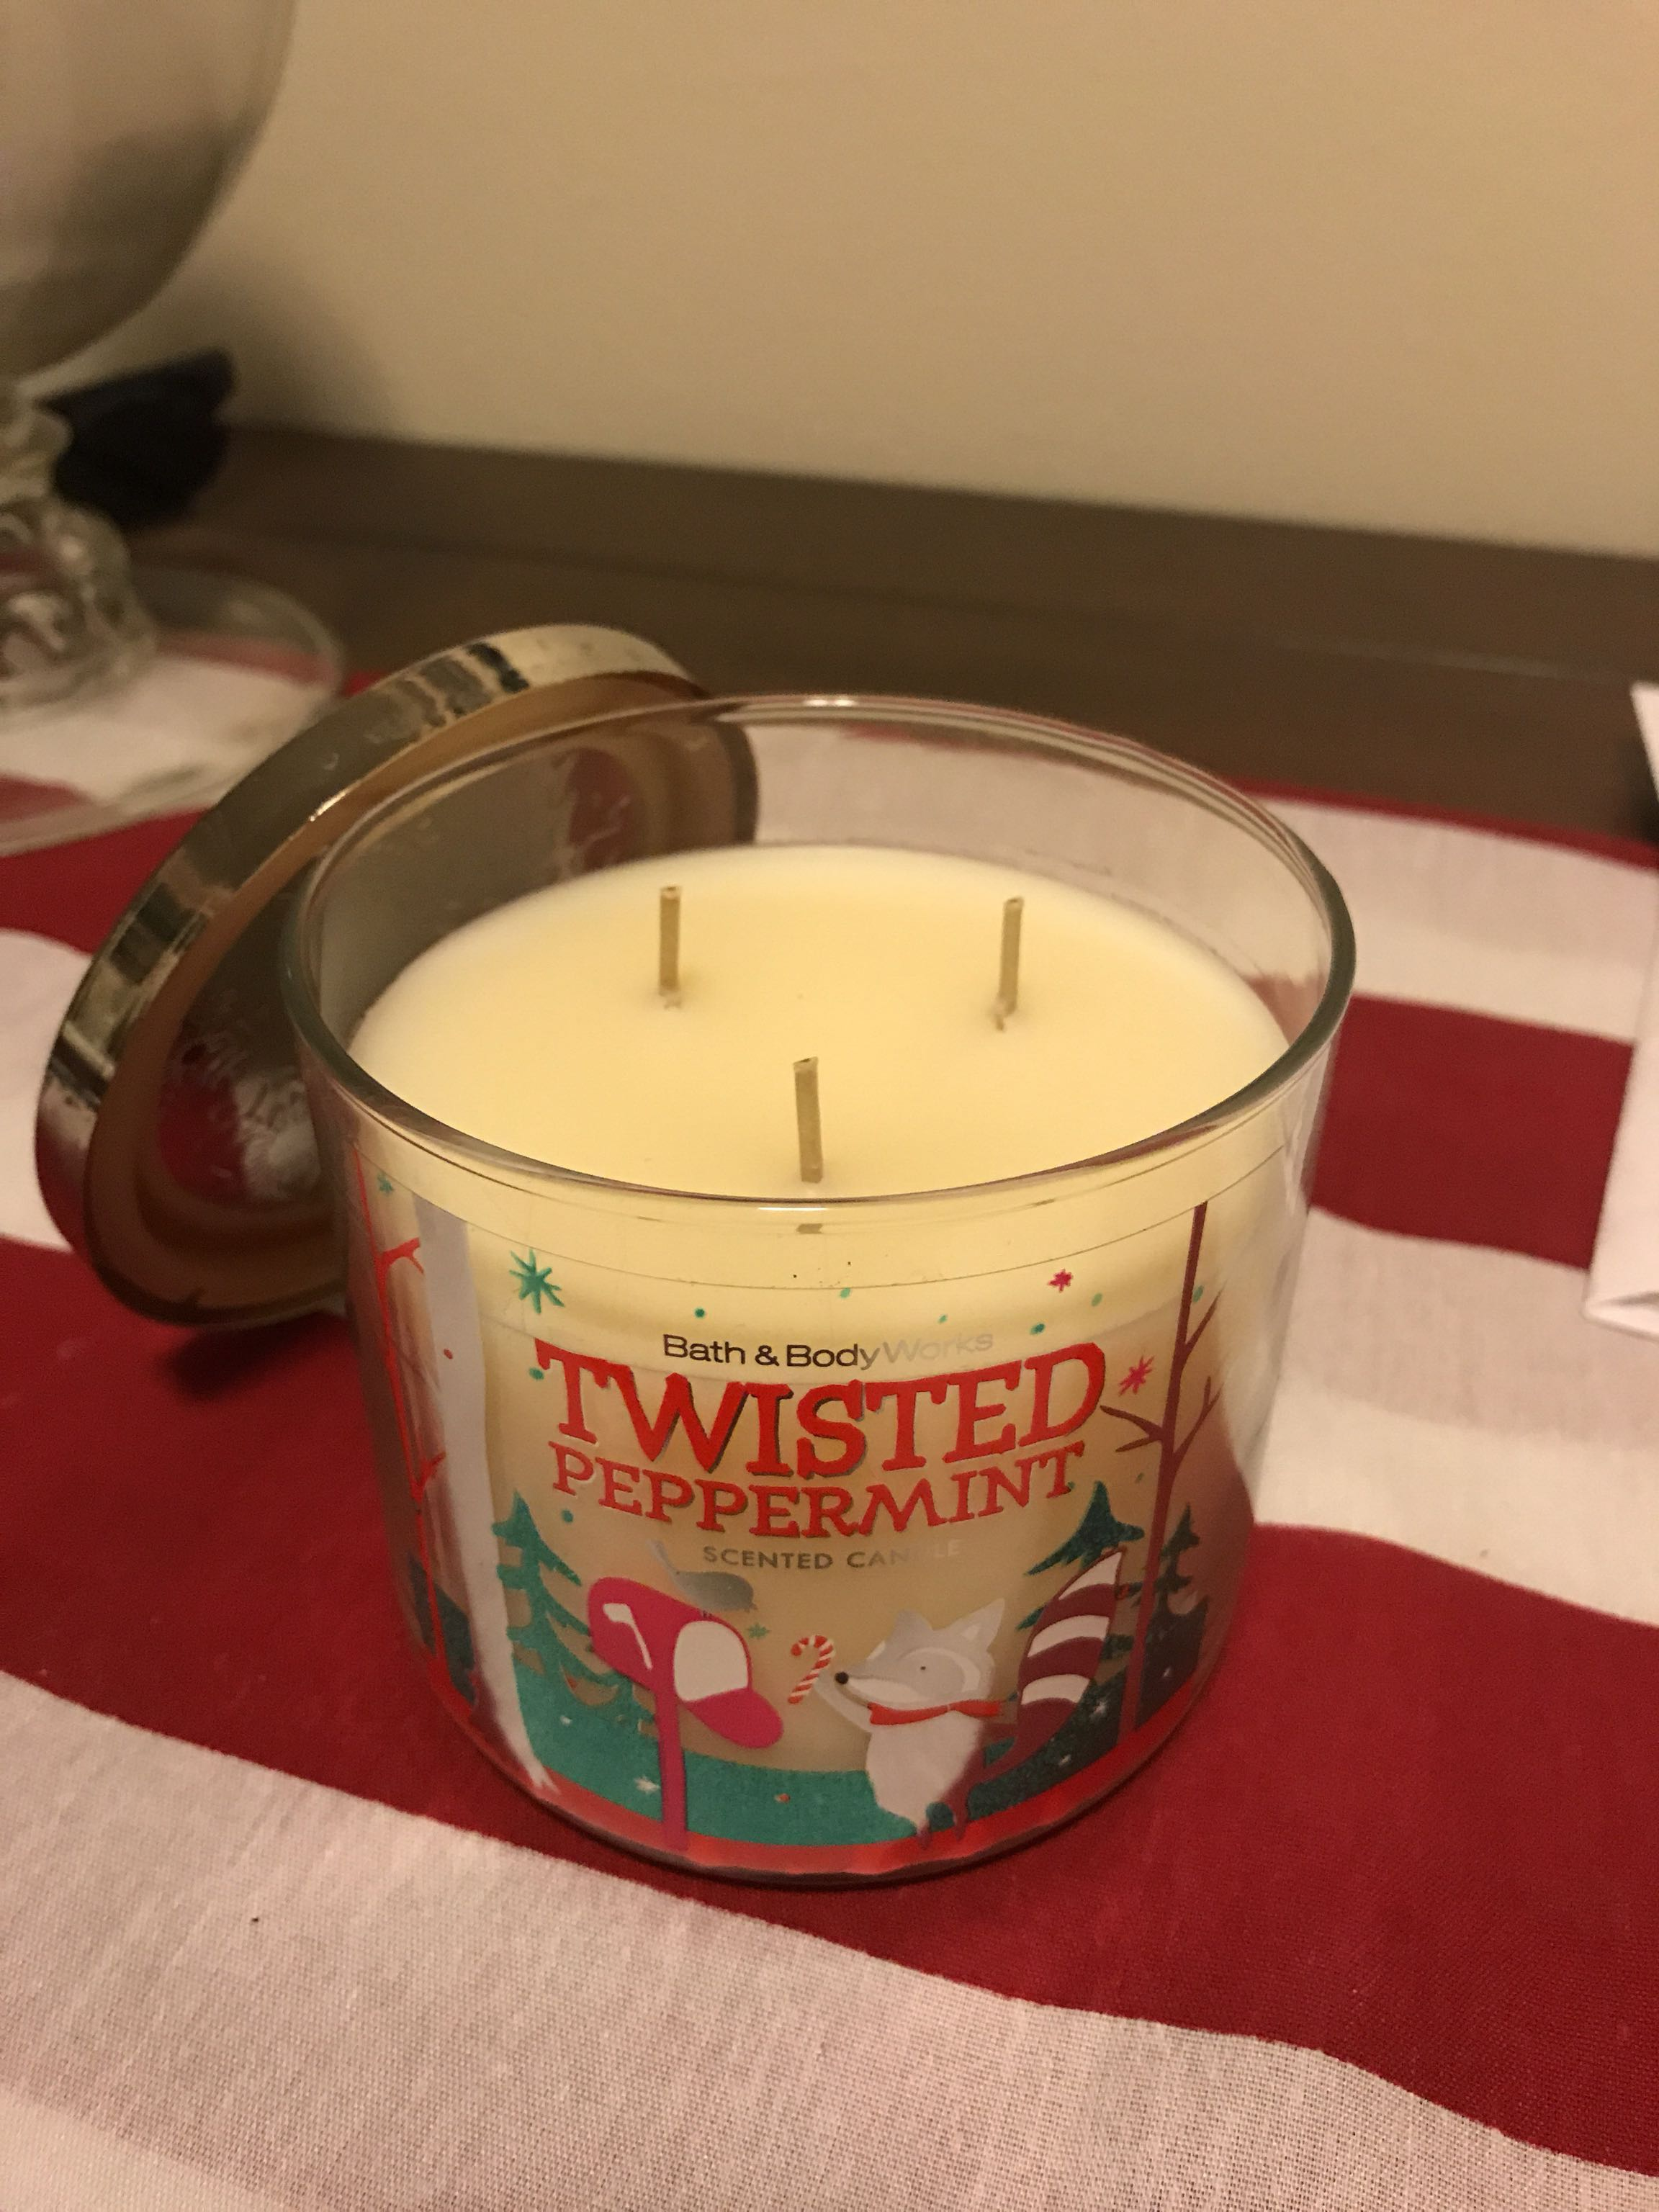 Twisted Peppermint bath and body works candle